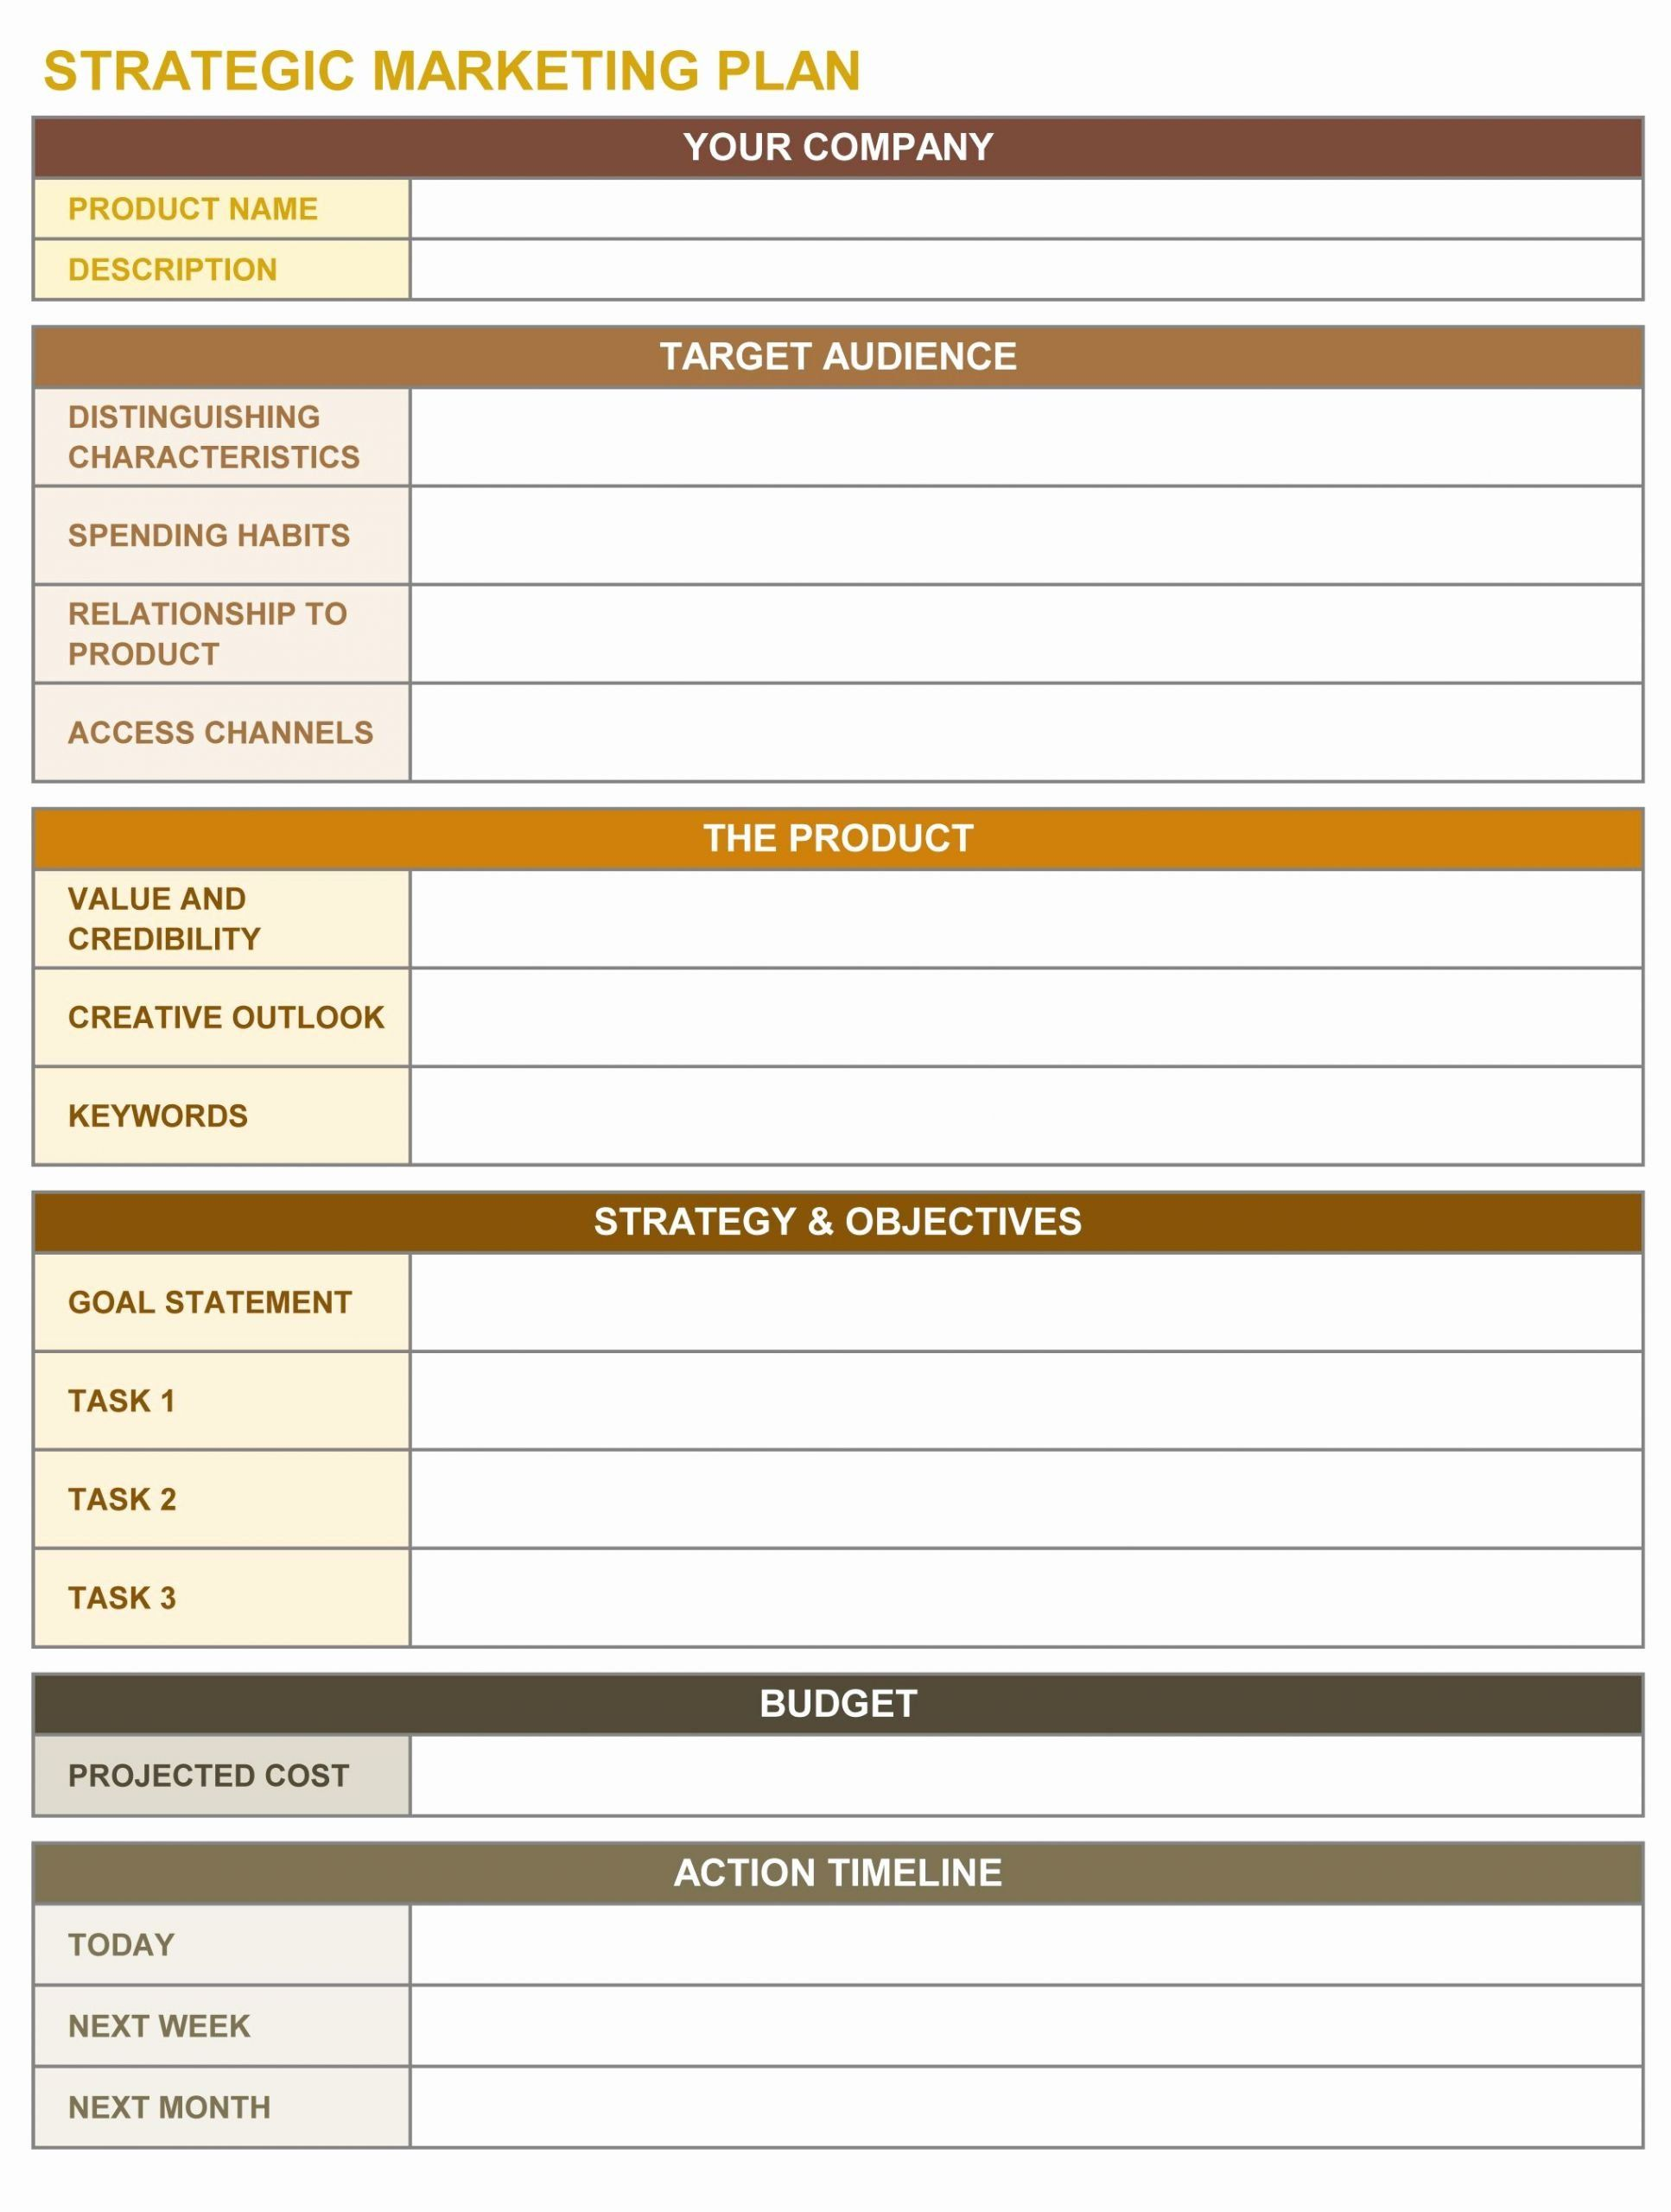 Marketing Action Plan Template Excel Elegant Strategic